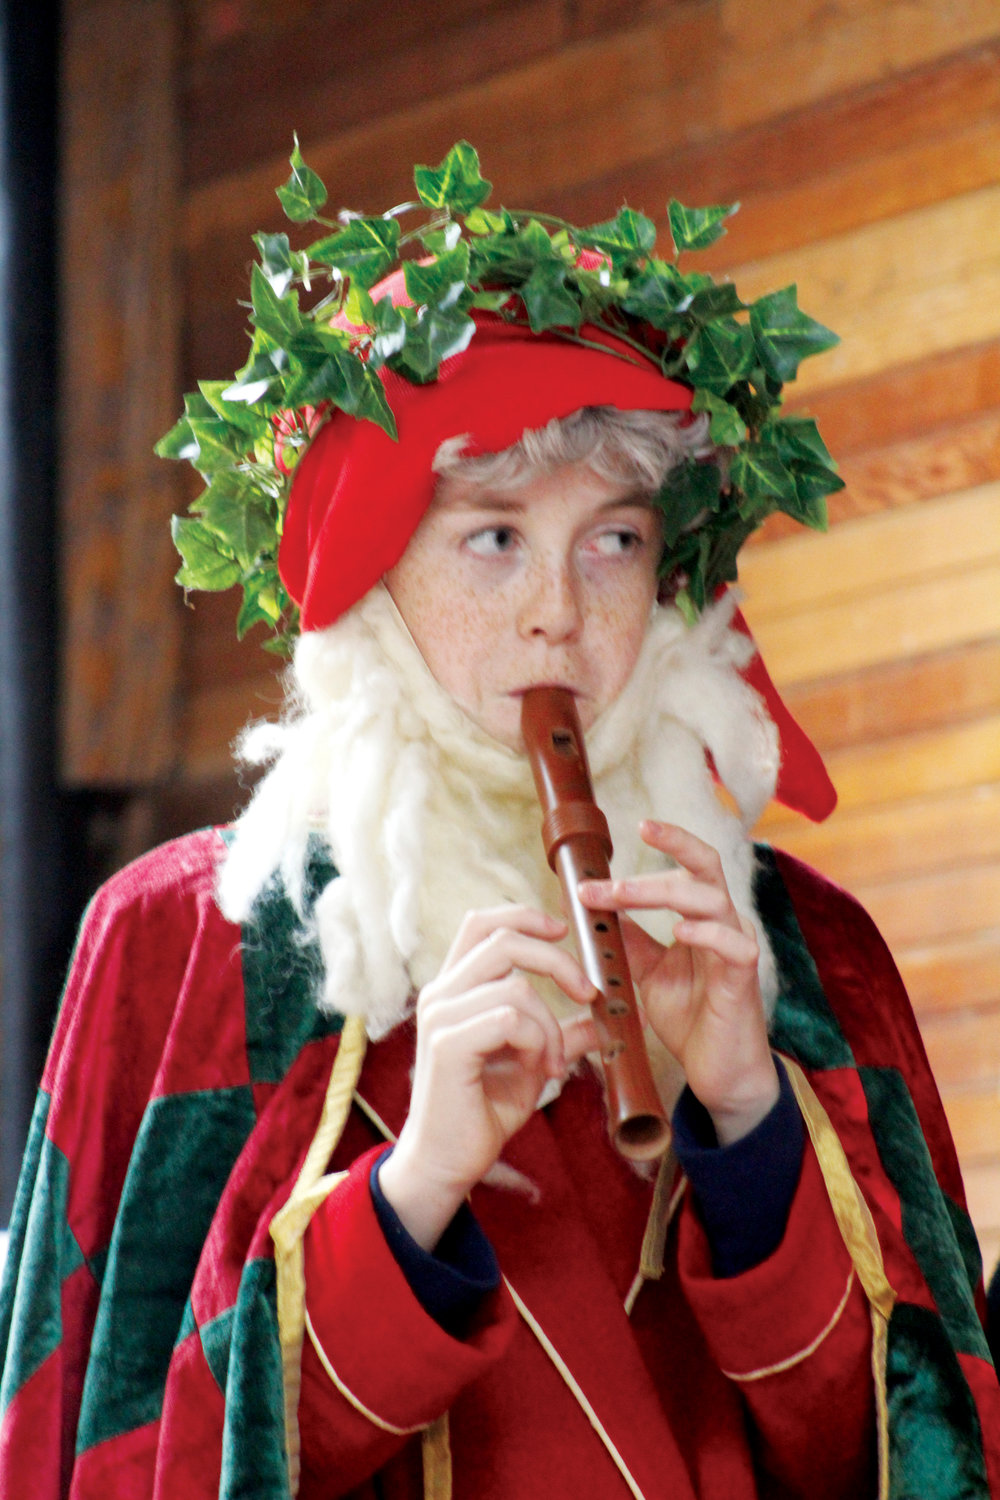 Father Christmas, played by Rowan Elliot, plays a traditional medieval piece on the recorder.